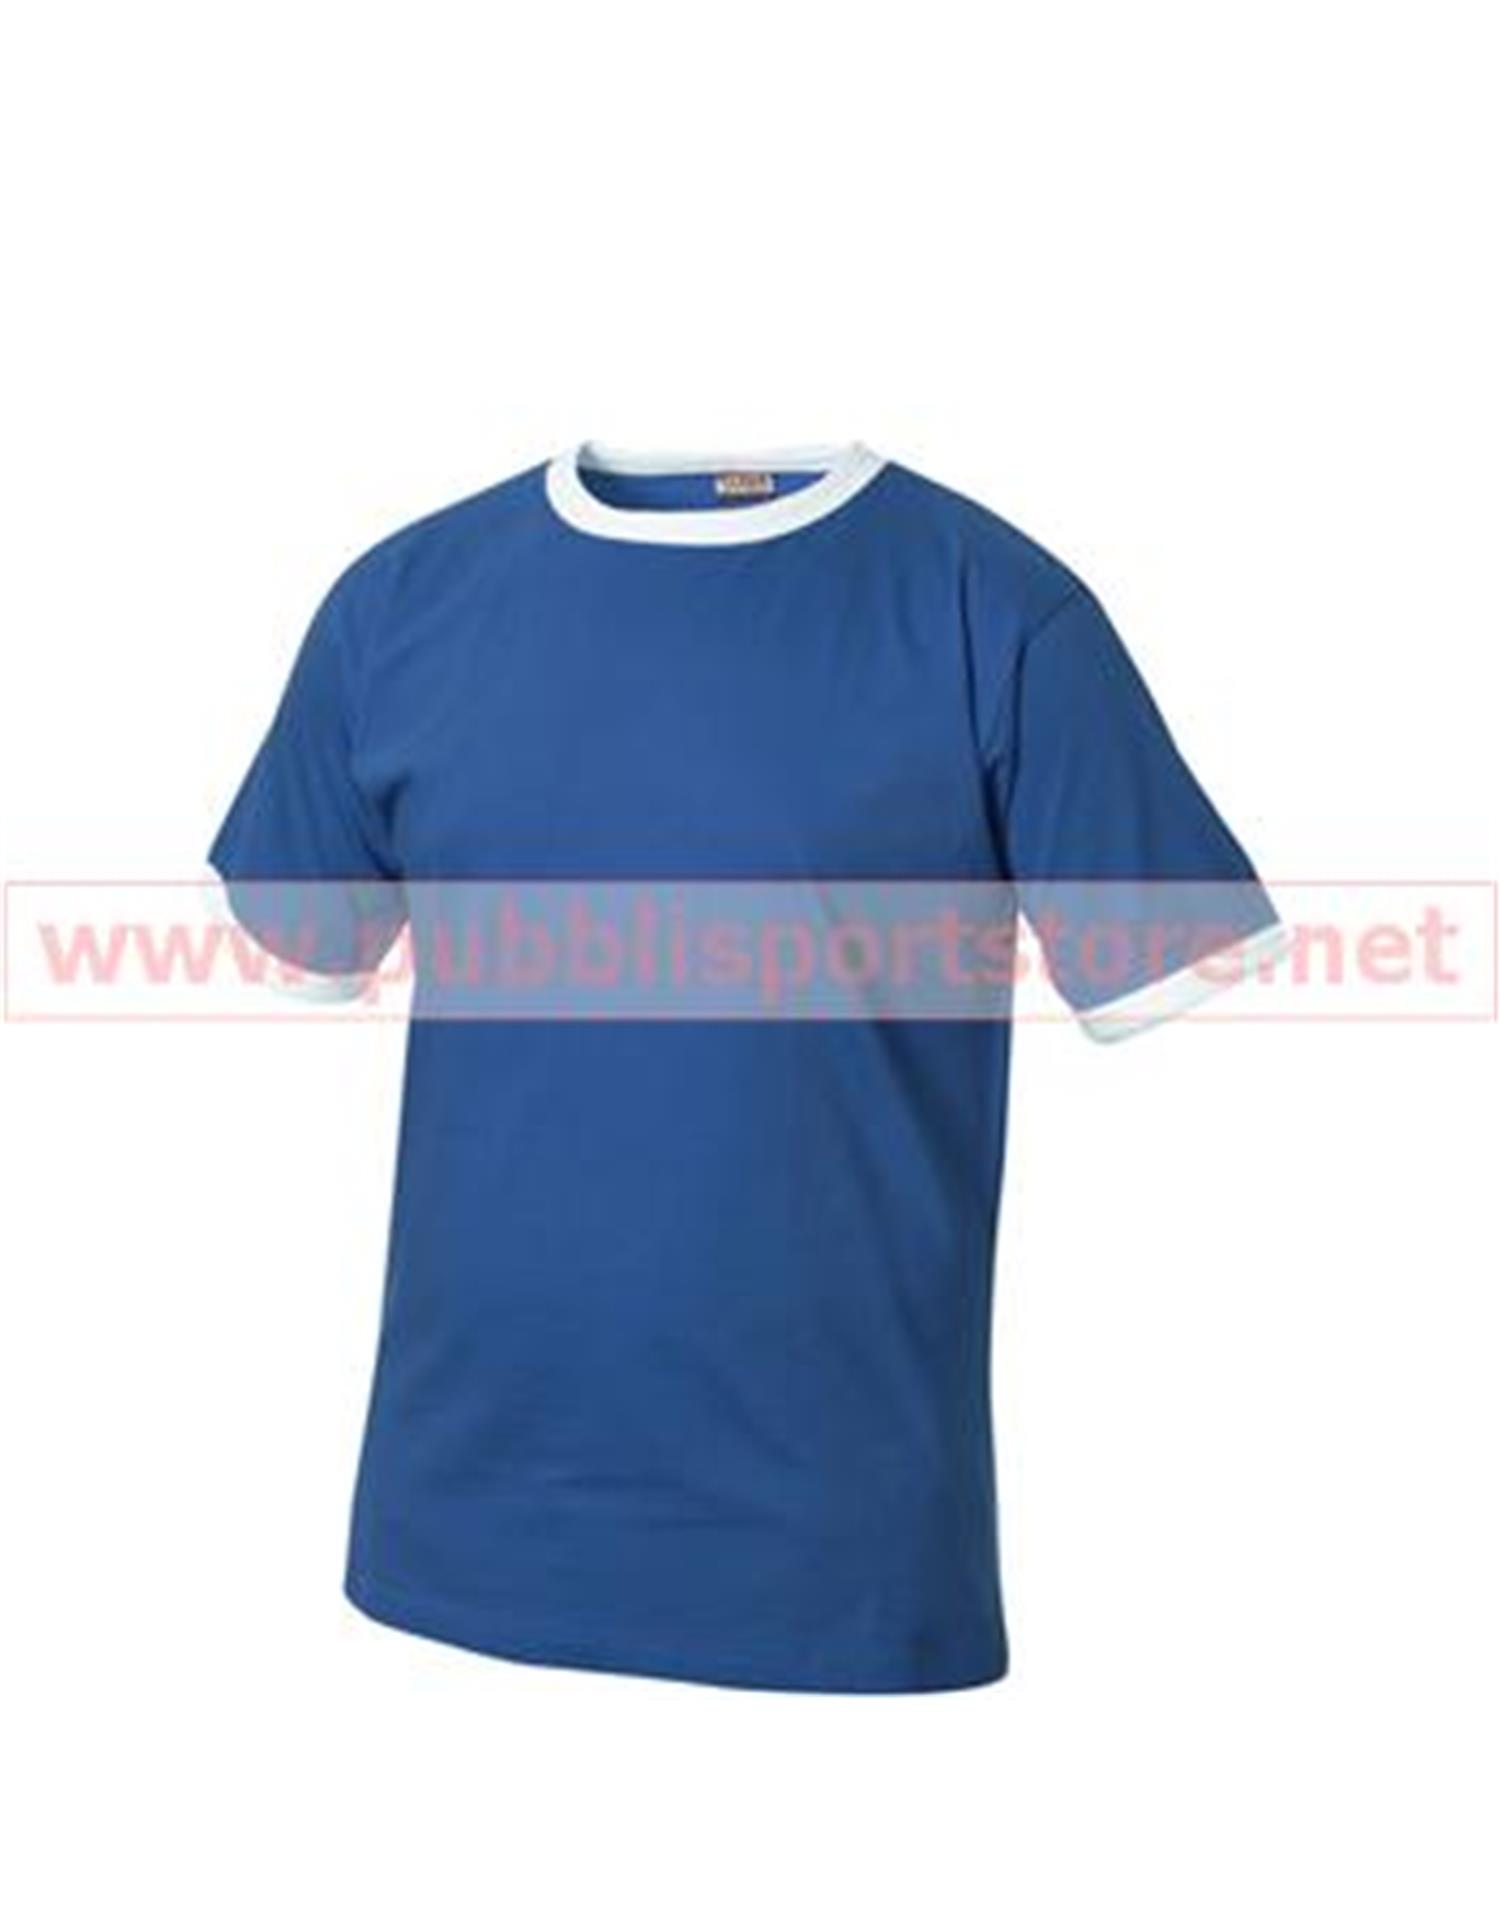 NewWave T-shirt mod. nome bi colore 160 gm (L - ROYAL)